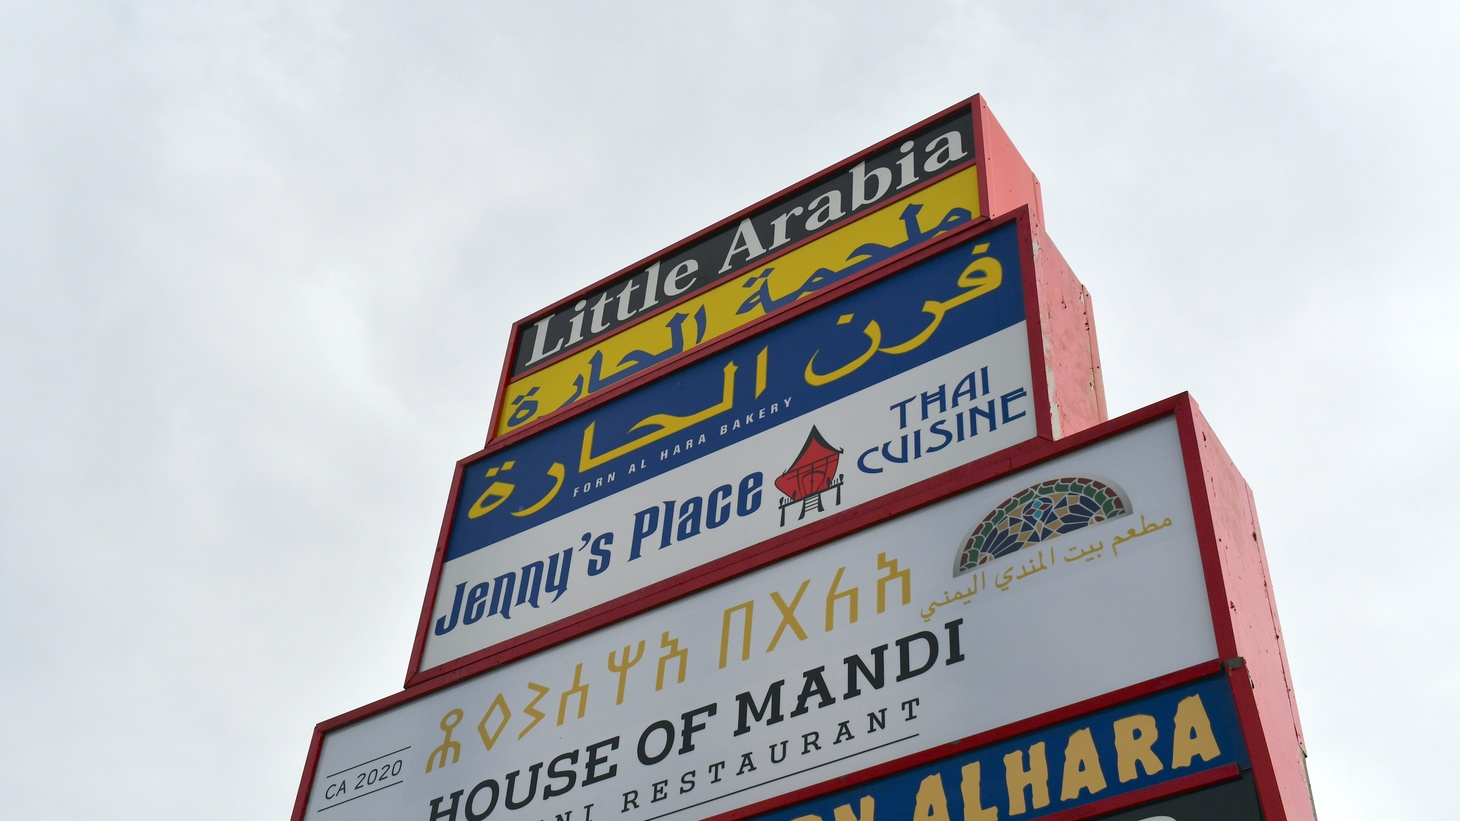 The ethnic community of Little Arabia is located along Brookhurst Street between Interstate 5 and Katella Avenue. However, it's currently not an official business district.